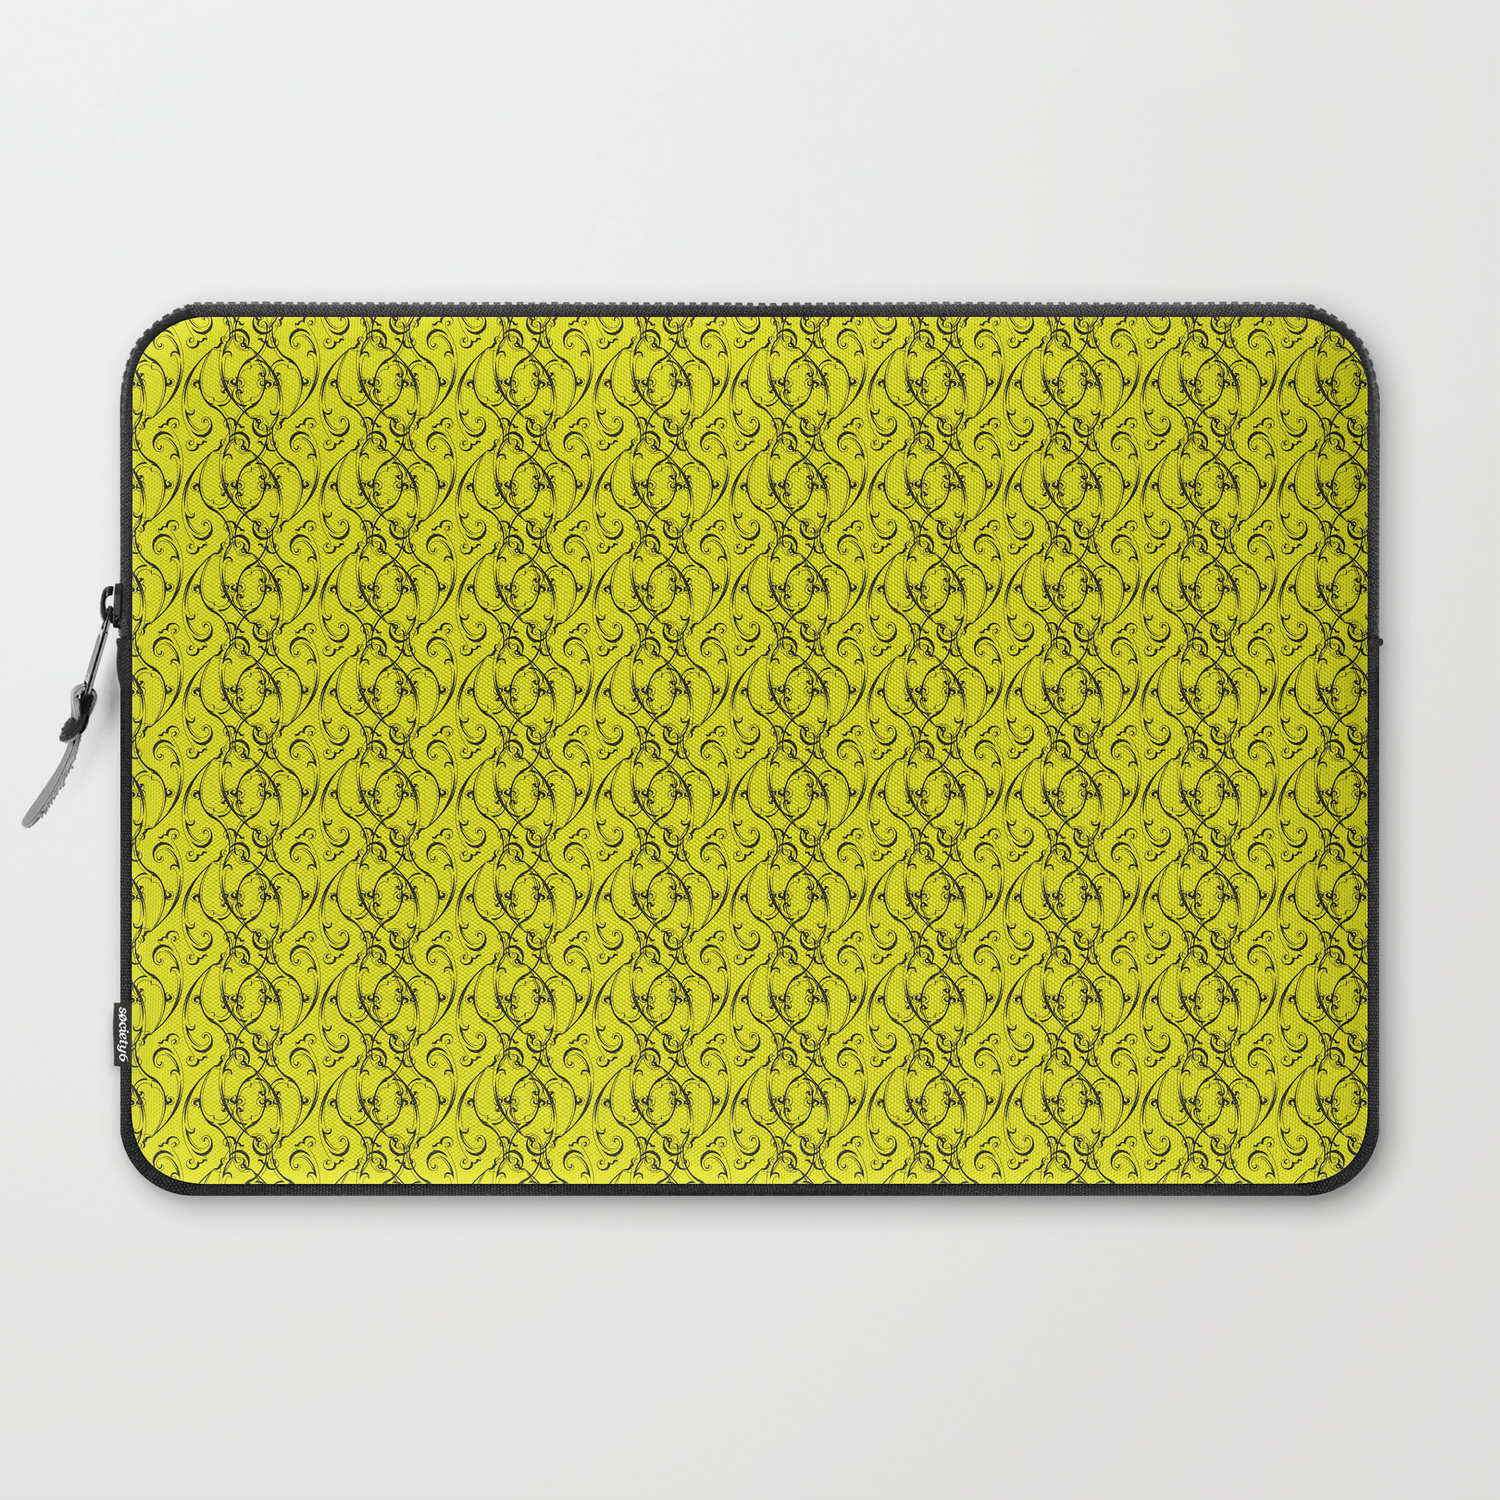 Thats Some Gross Vintage Wallpaper Laptop Sleeve by 1500x1500